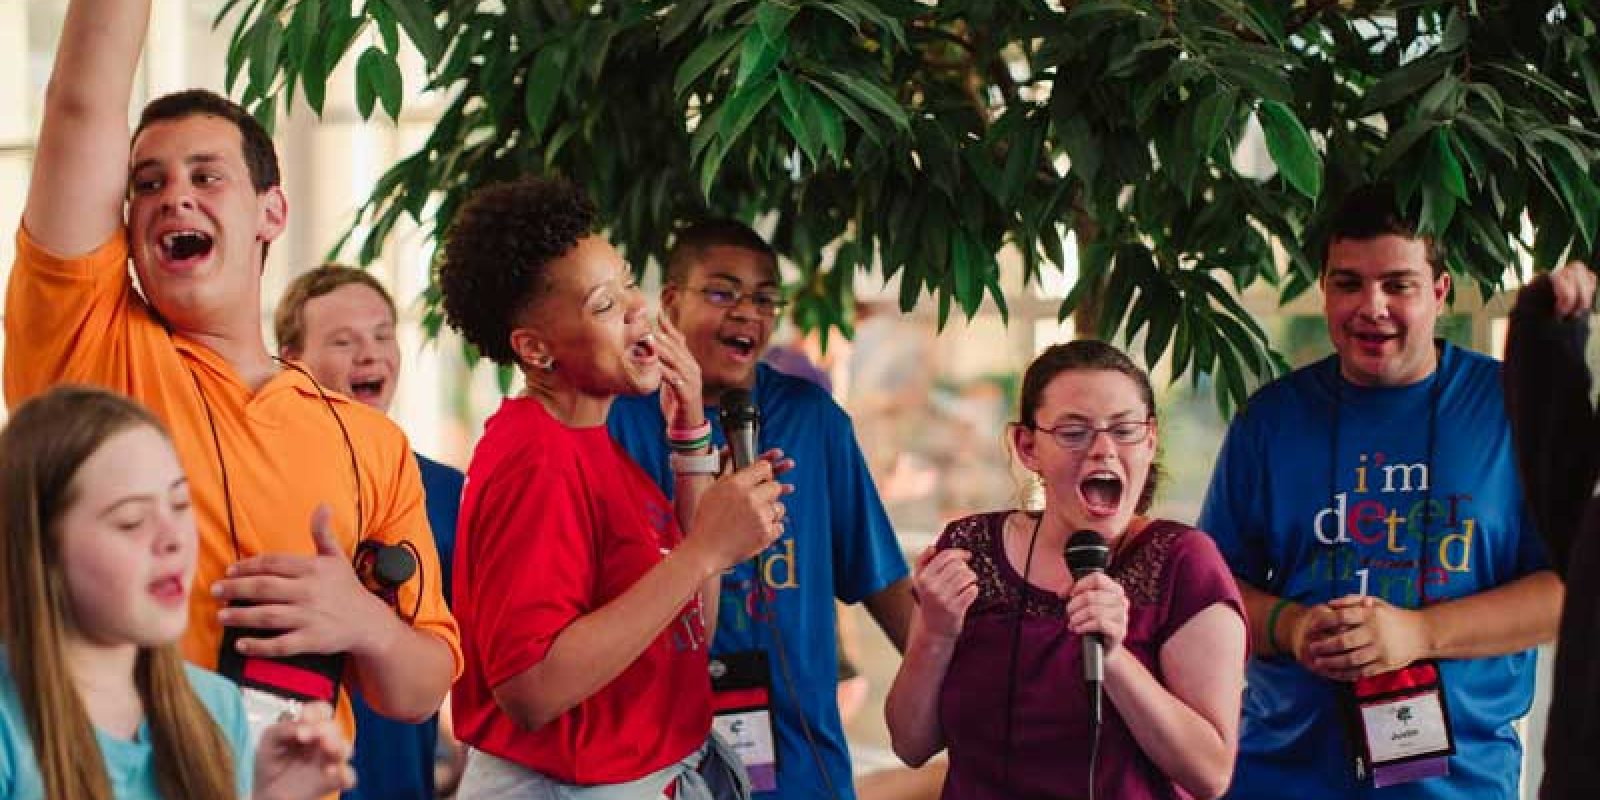 youth leaders in brightly colored shirts sing joyfully into microphones